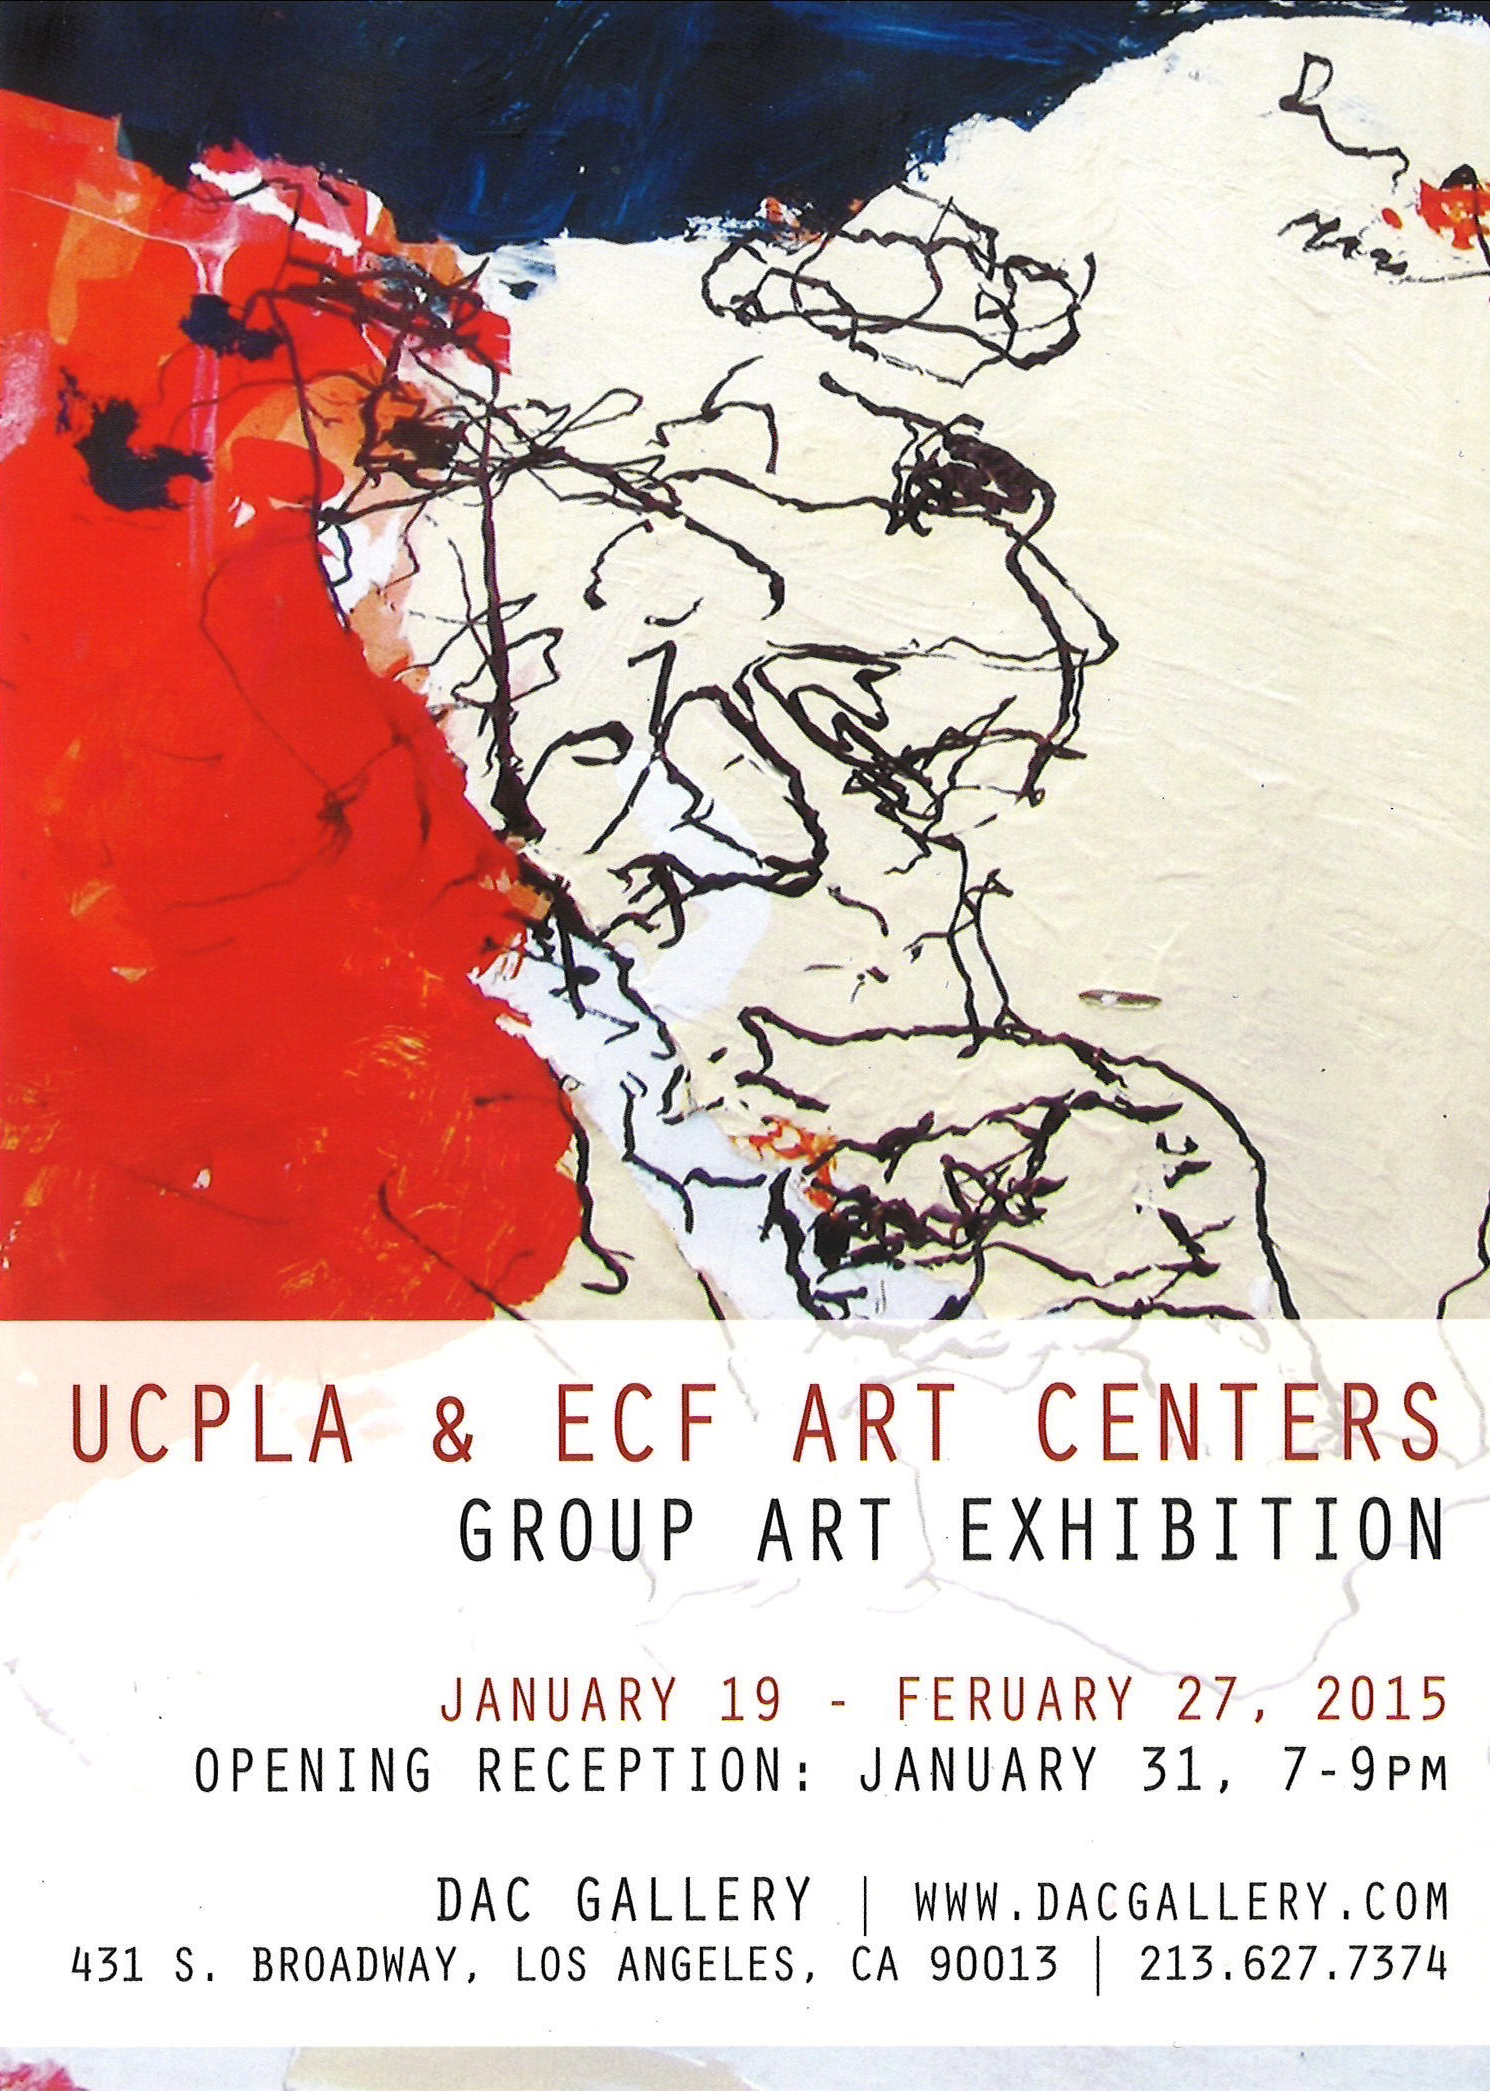 UCPLA & ECF Art Centers Group Art Exhibition